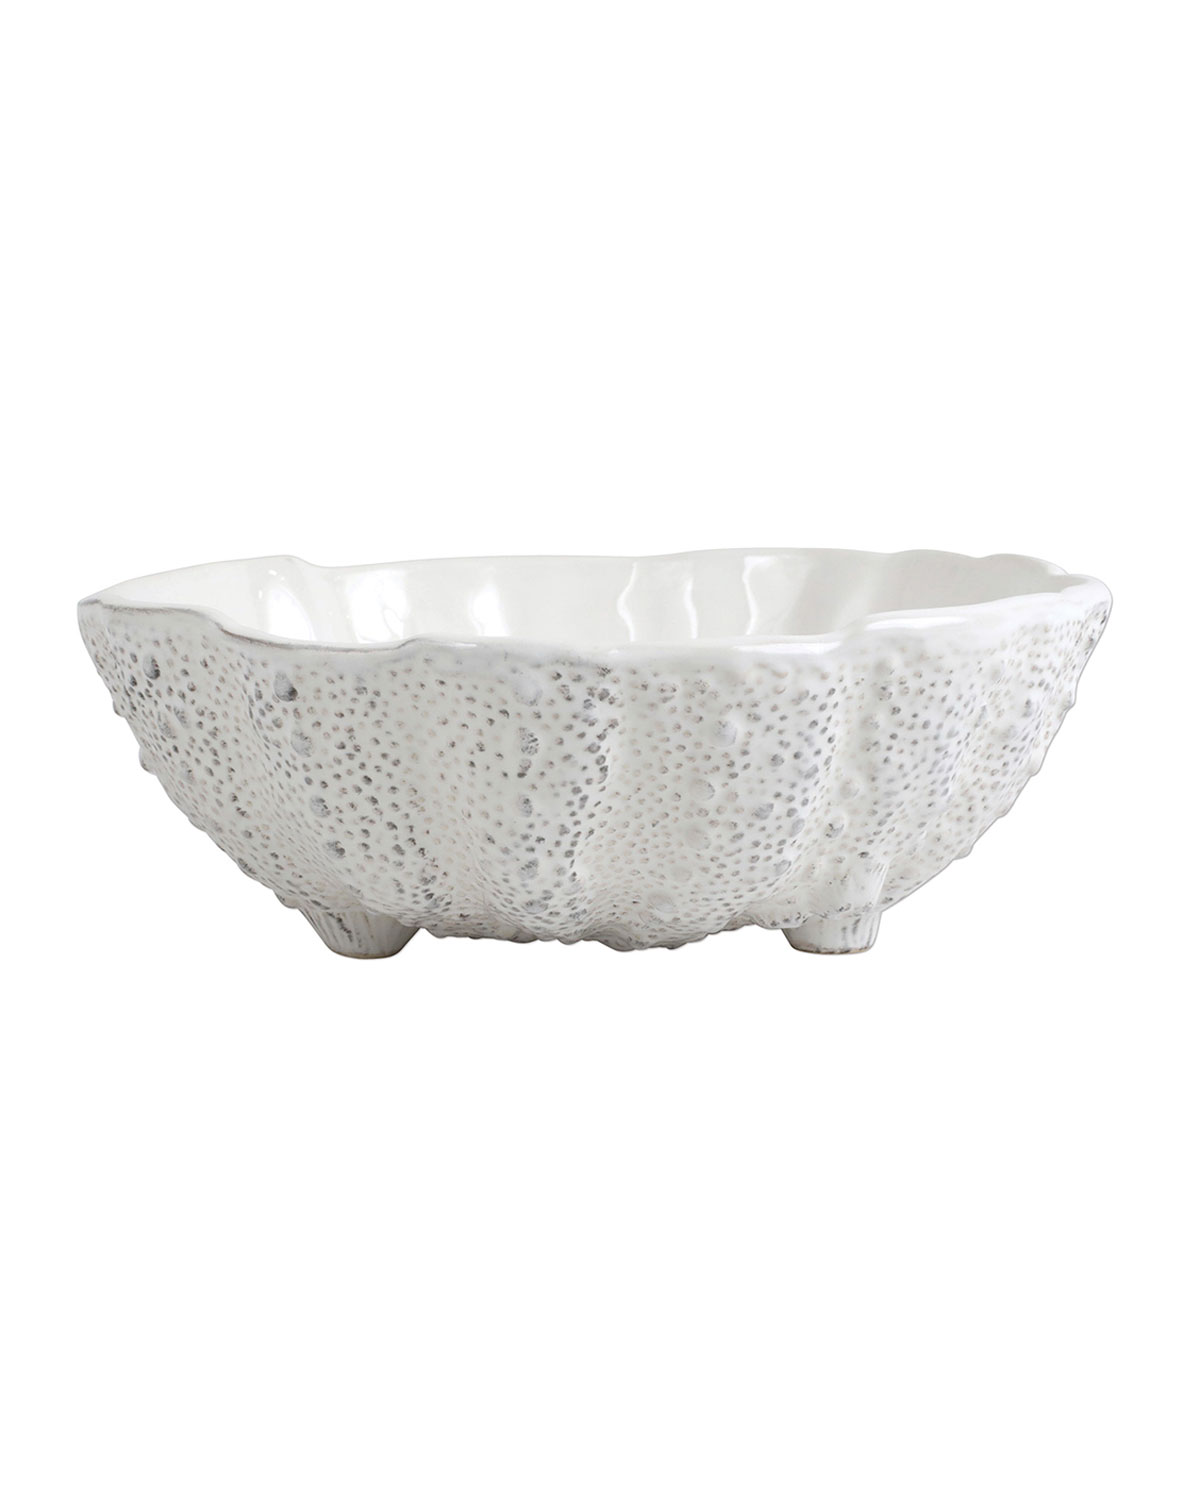 Vietri ACQUATICO WHITE SEA URCHIN MEDIUM BOWL